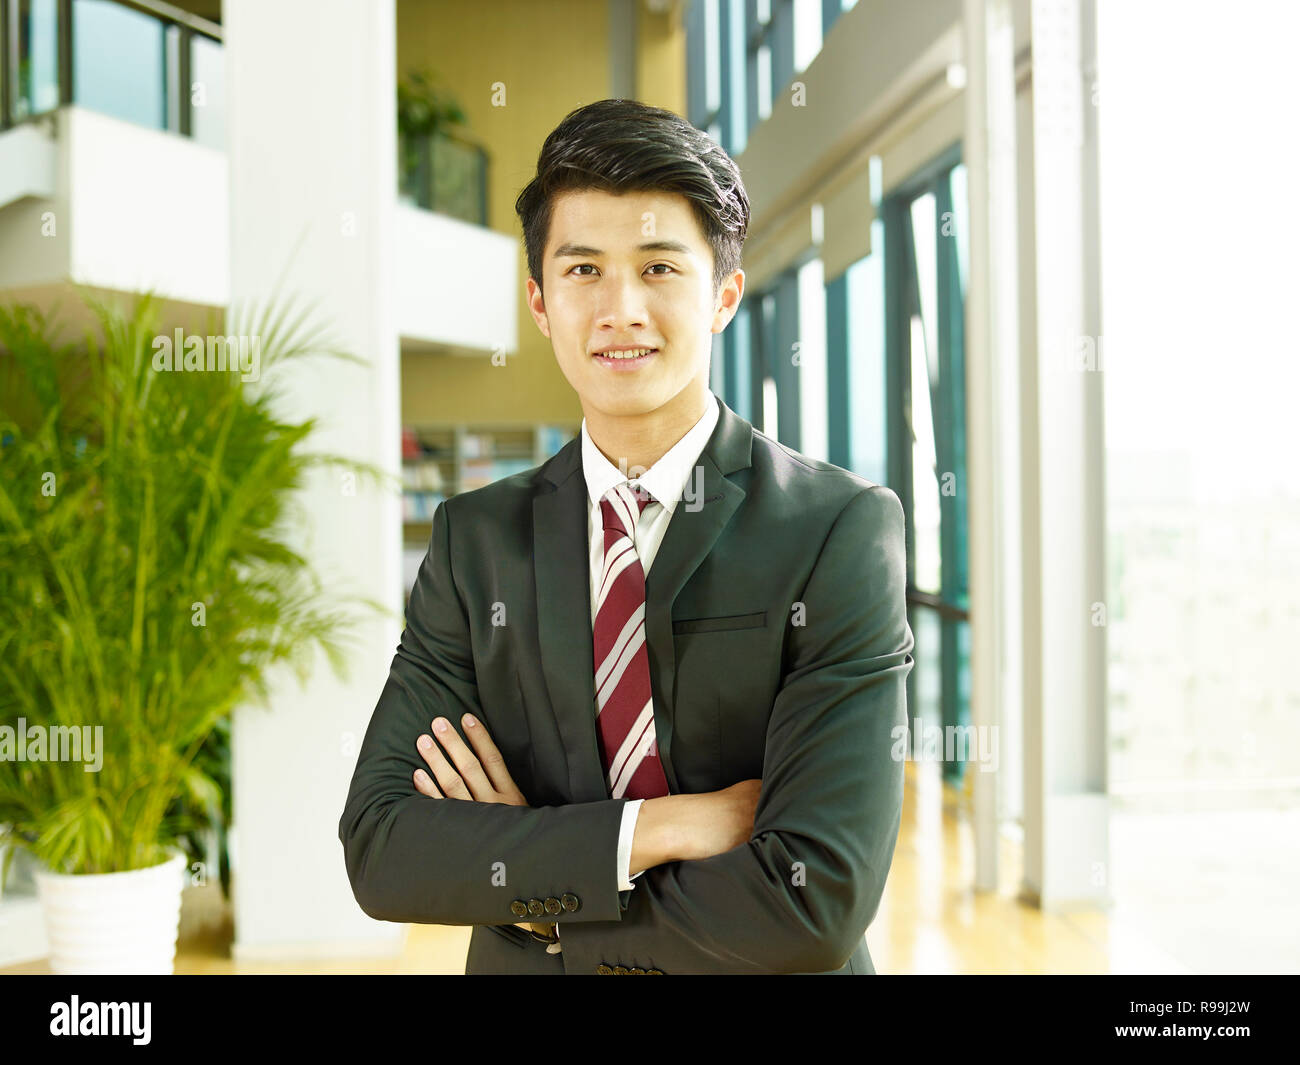 Portrait Of A Young Asian Business Man Arms Crossed